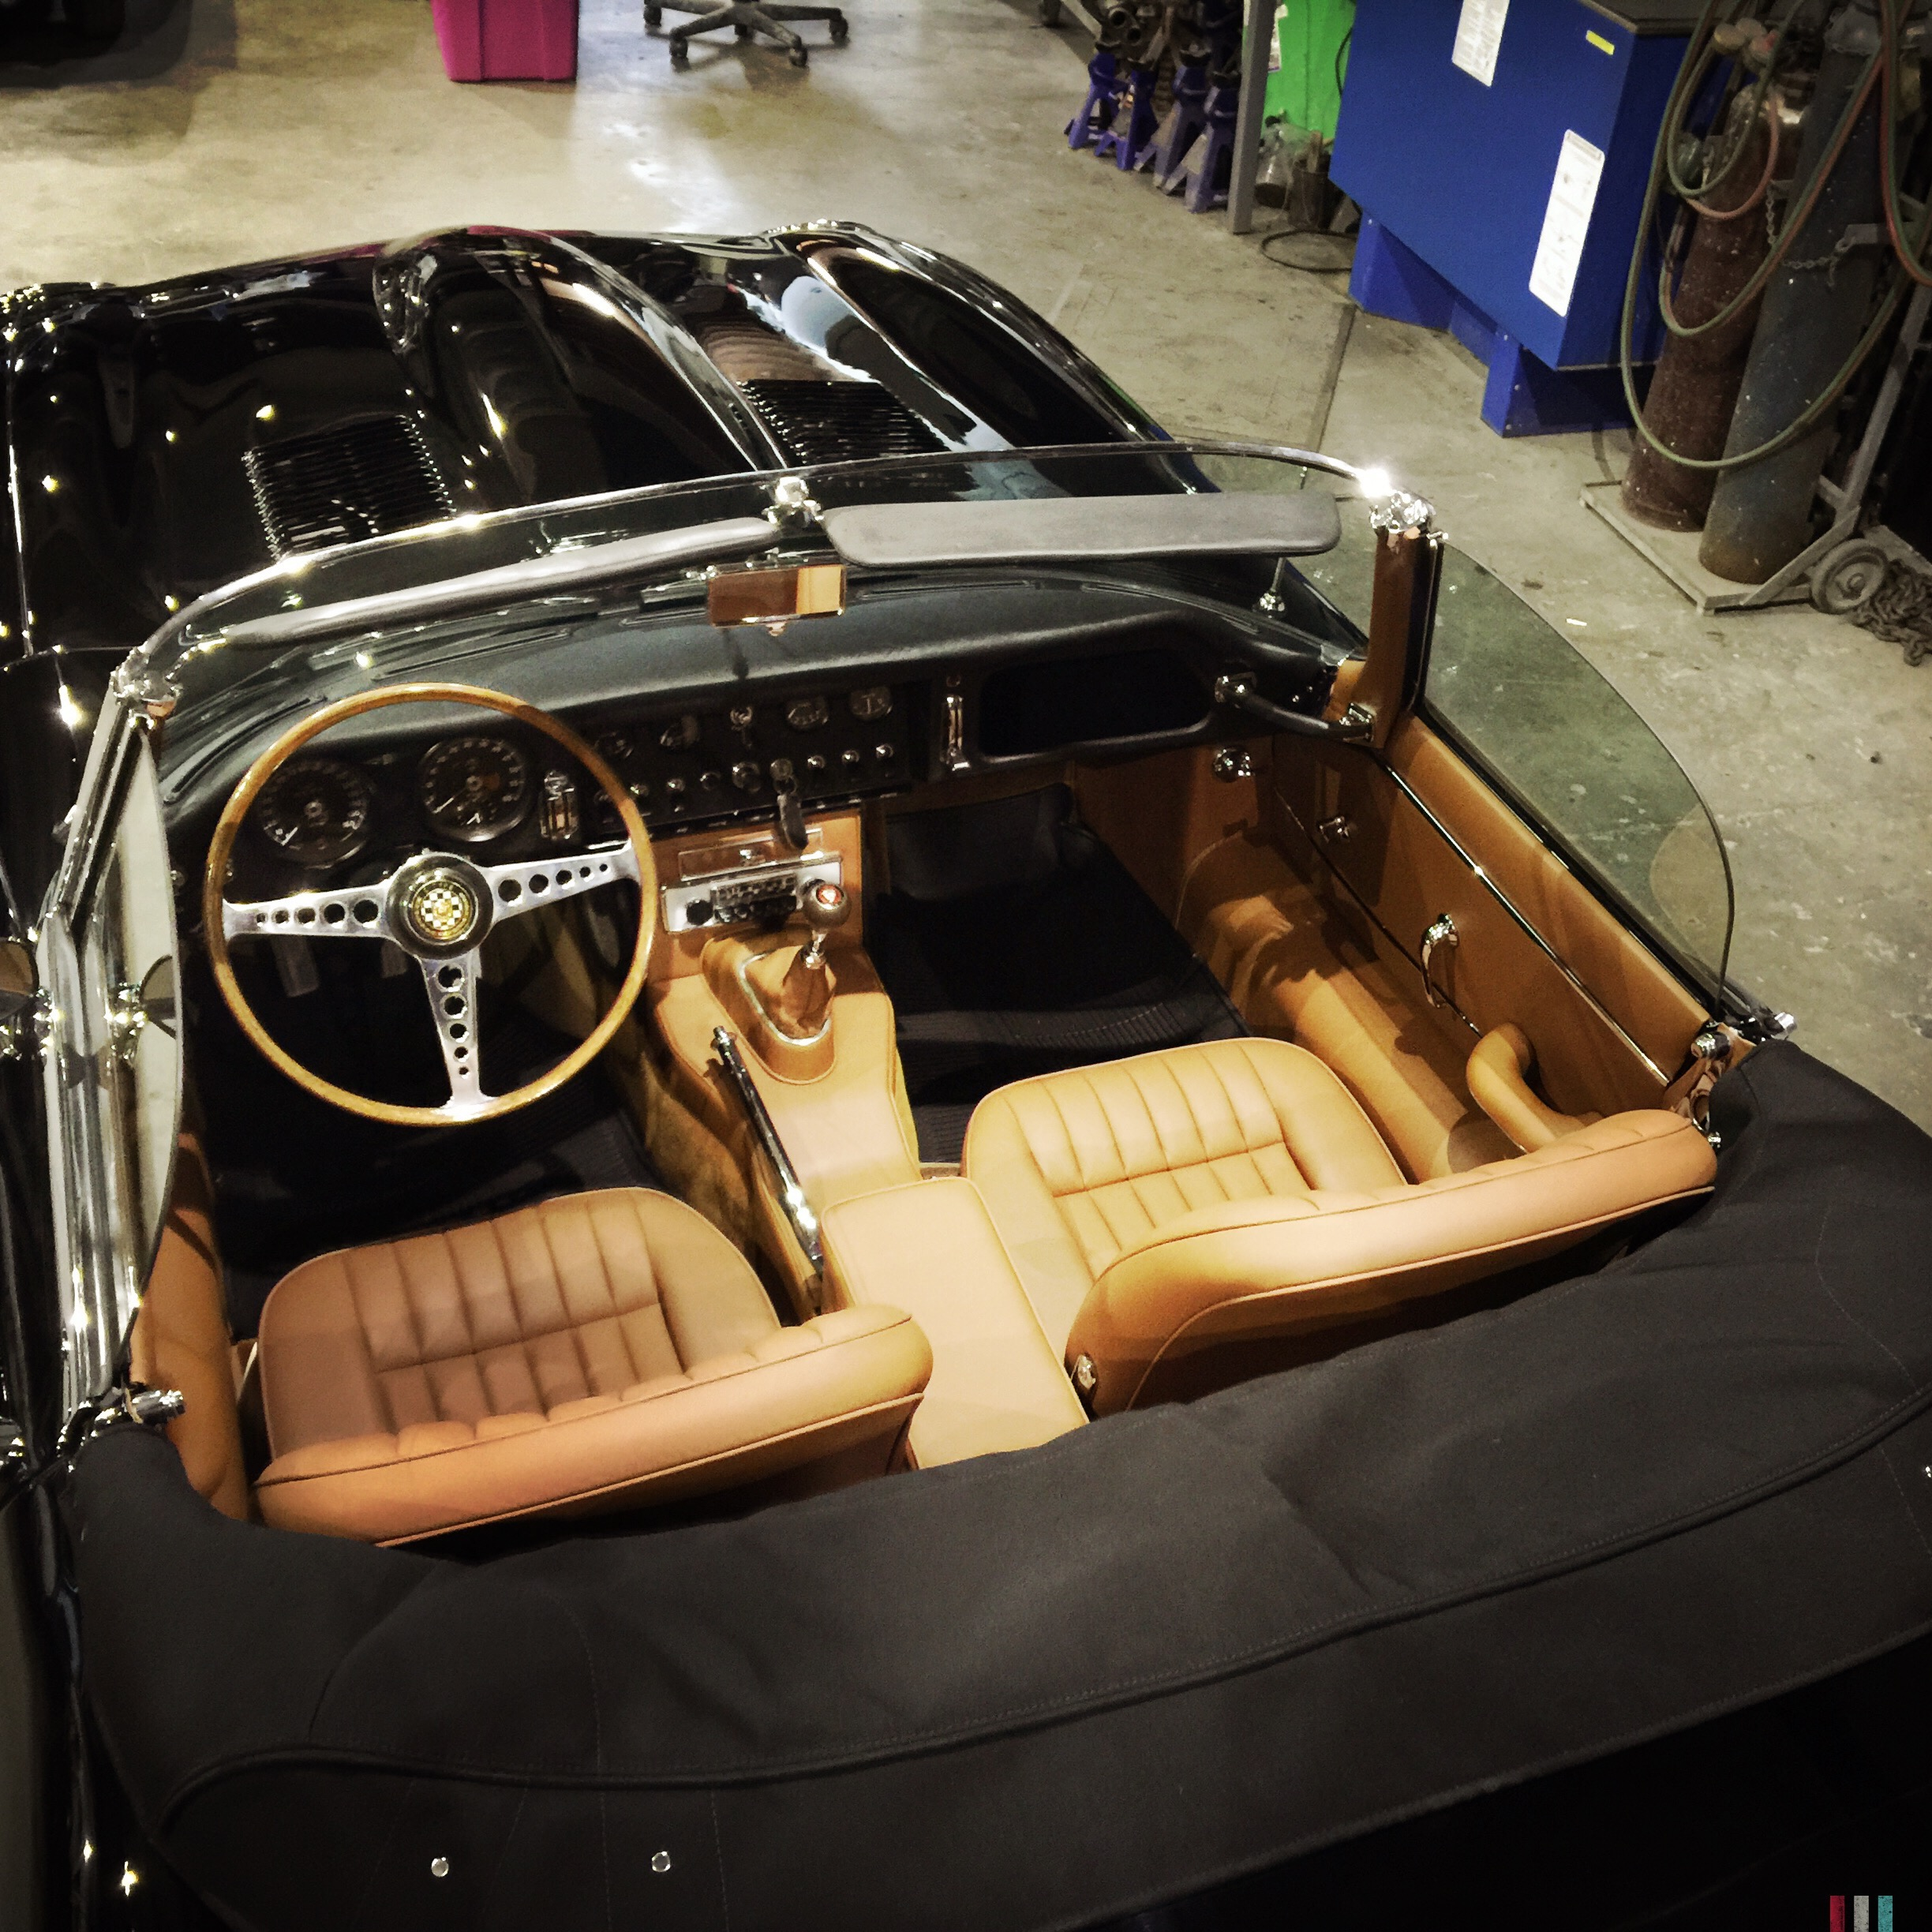 Anaheim Rod and Custom Interior 2.jpg